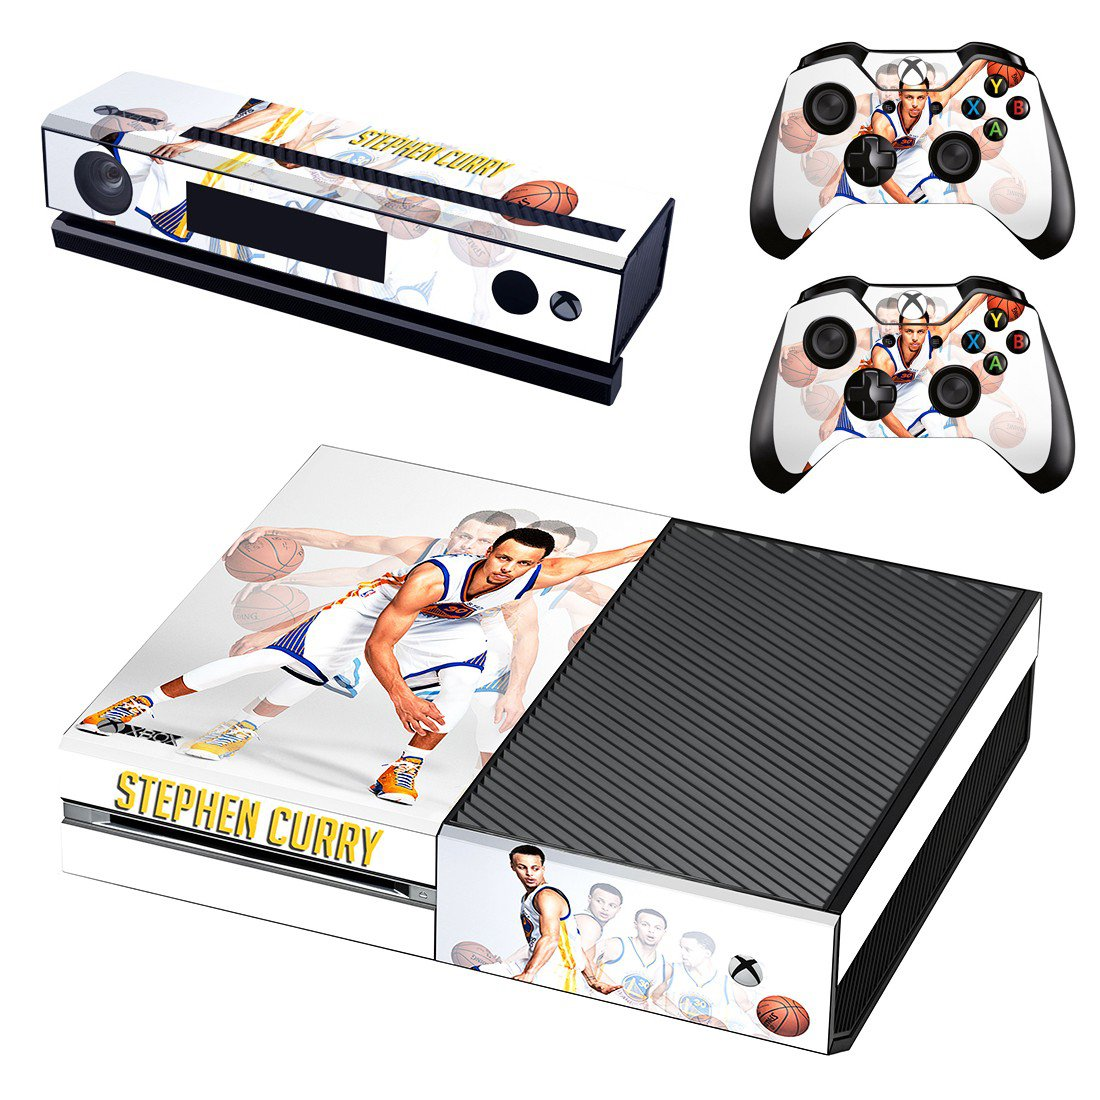 Stephen Curry skin decal for Xbox one console and controllers